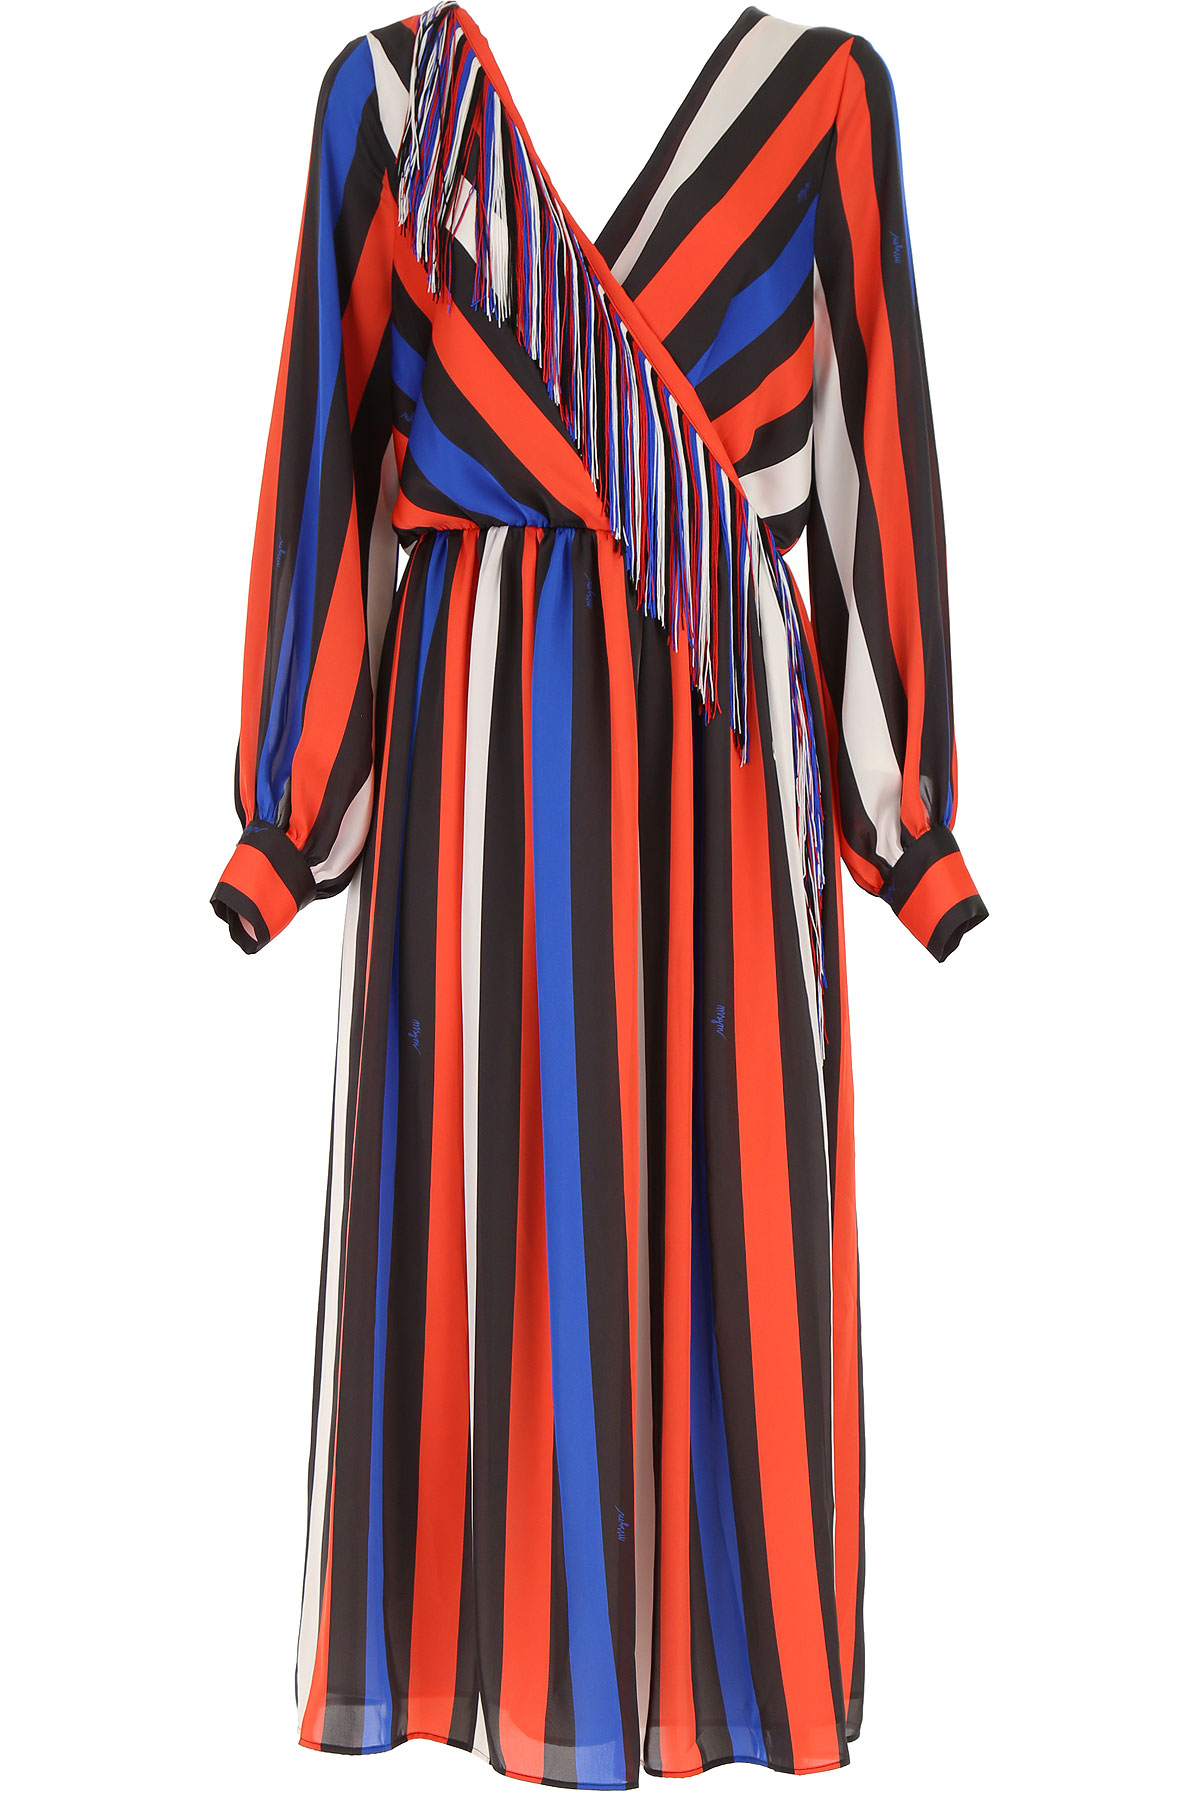 MSGM Dress for Women, Evening Cocktail Party, Multicolor, polyester, 2017, 8 8